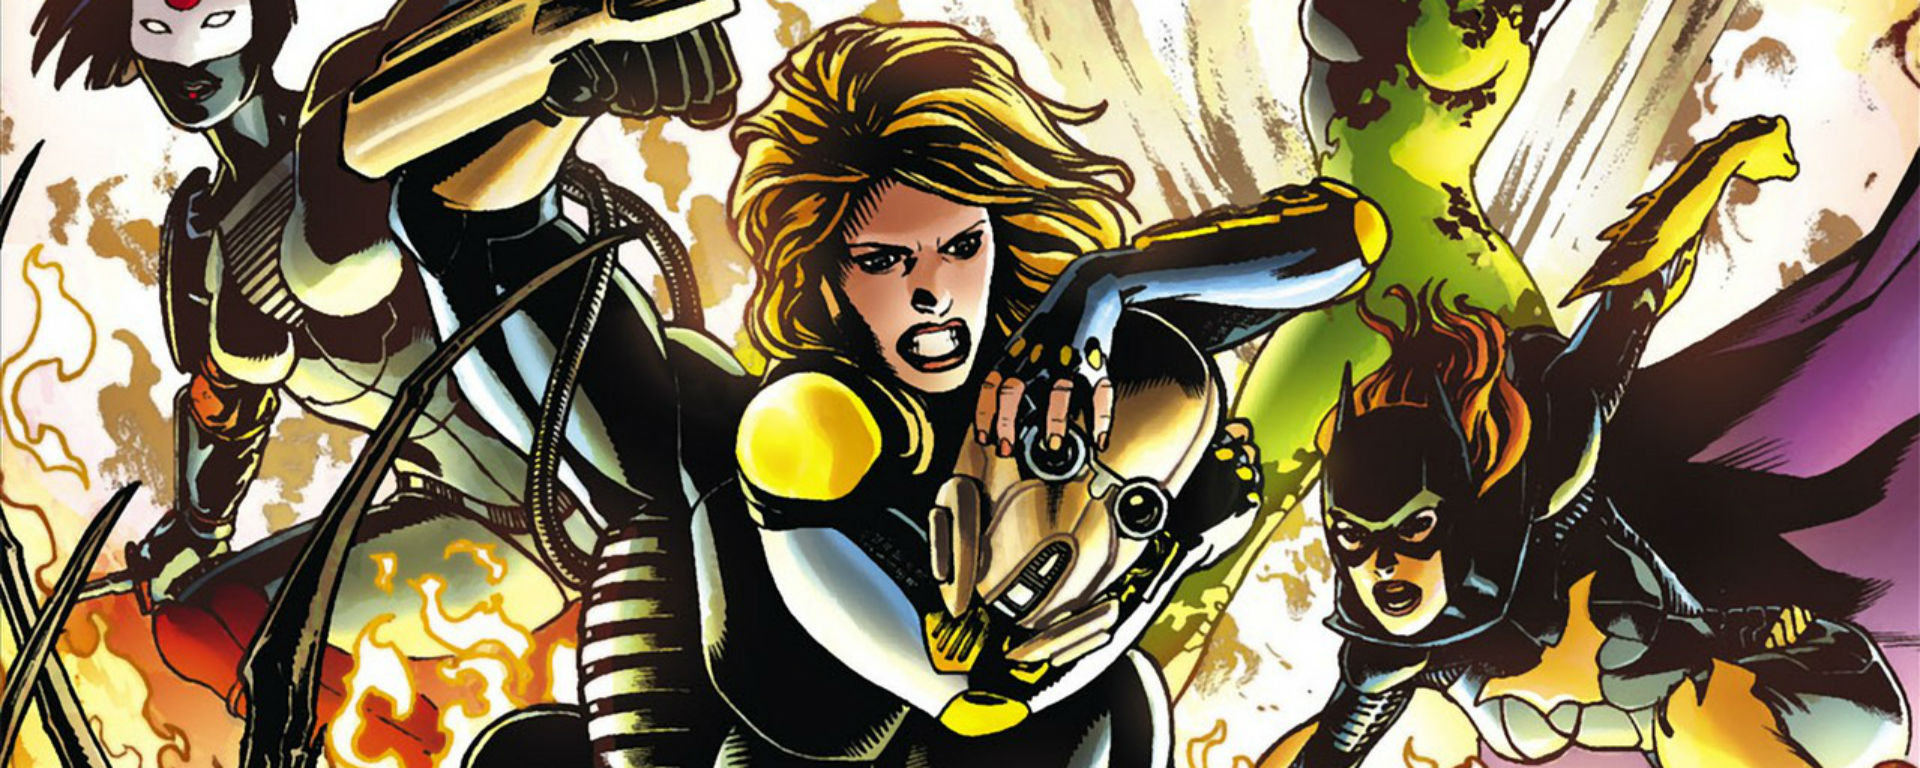 dc comics birds of prey 8 2012 review feature image